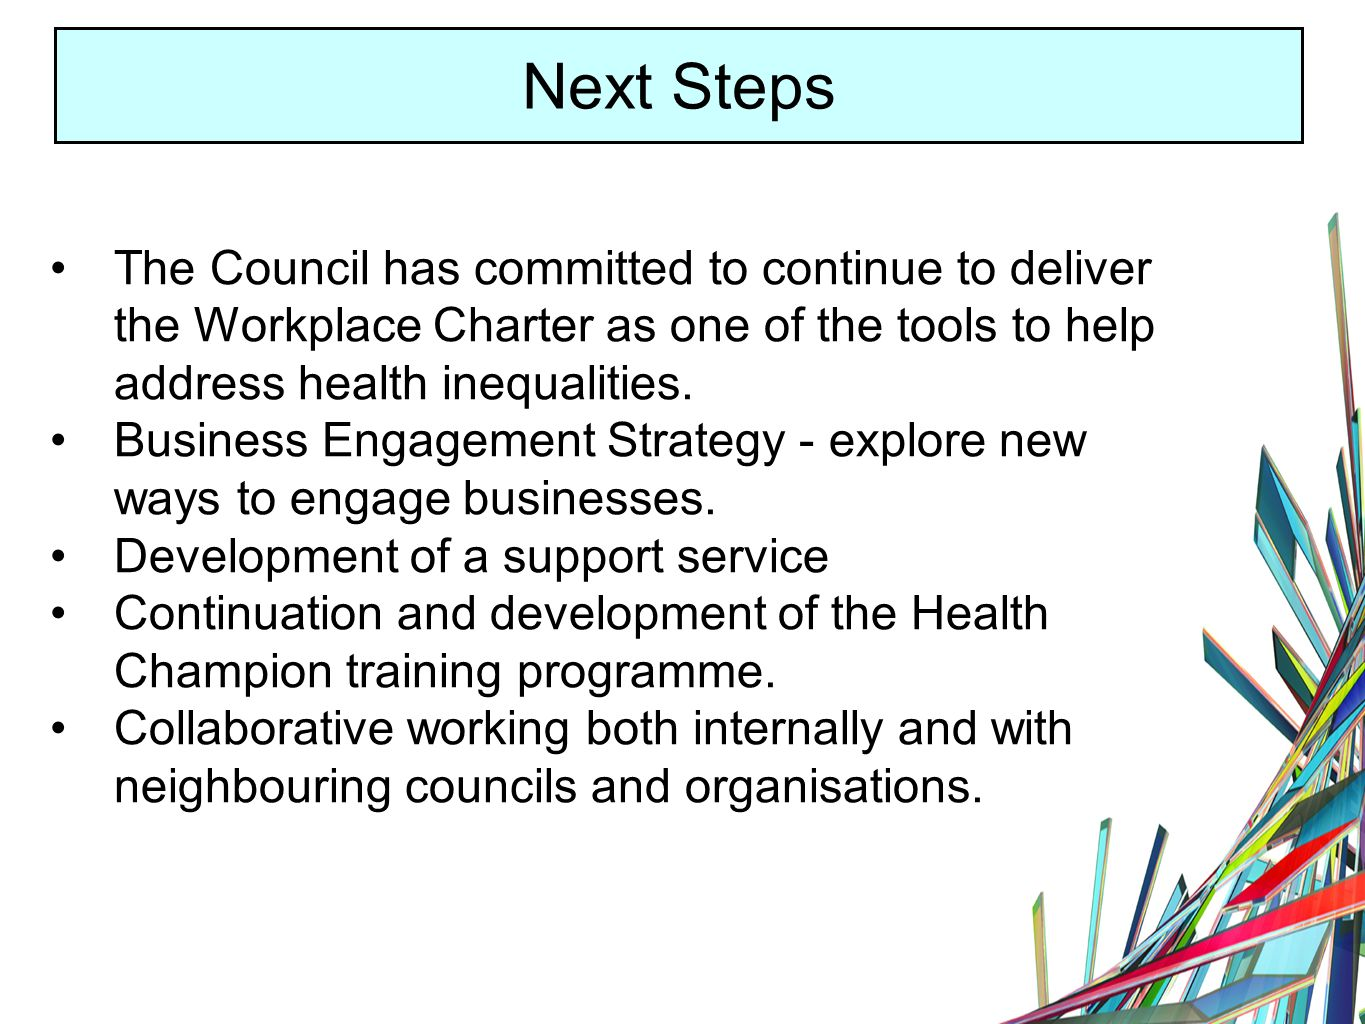 Next Steps The Council has committed to continue to deliver the Workplace Charter as one of the tools to help address health inequalities.